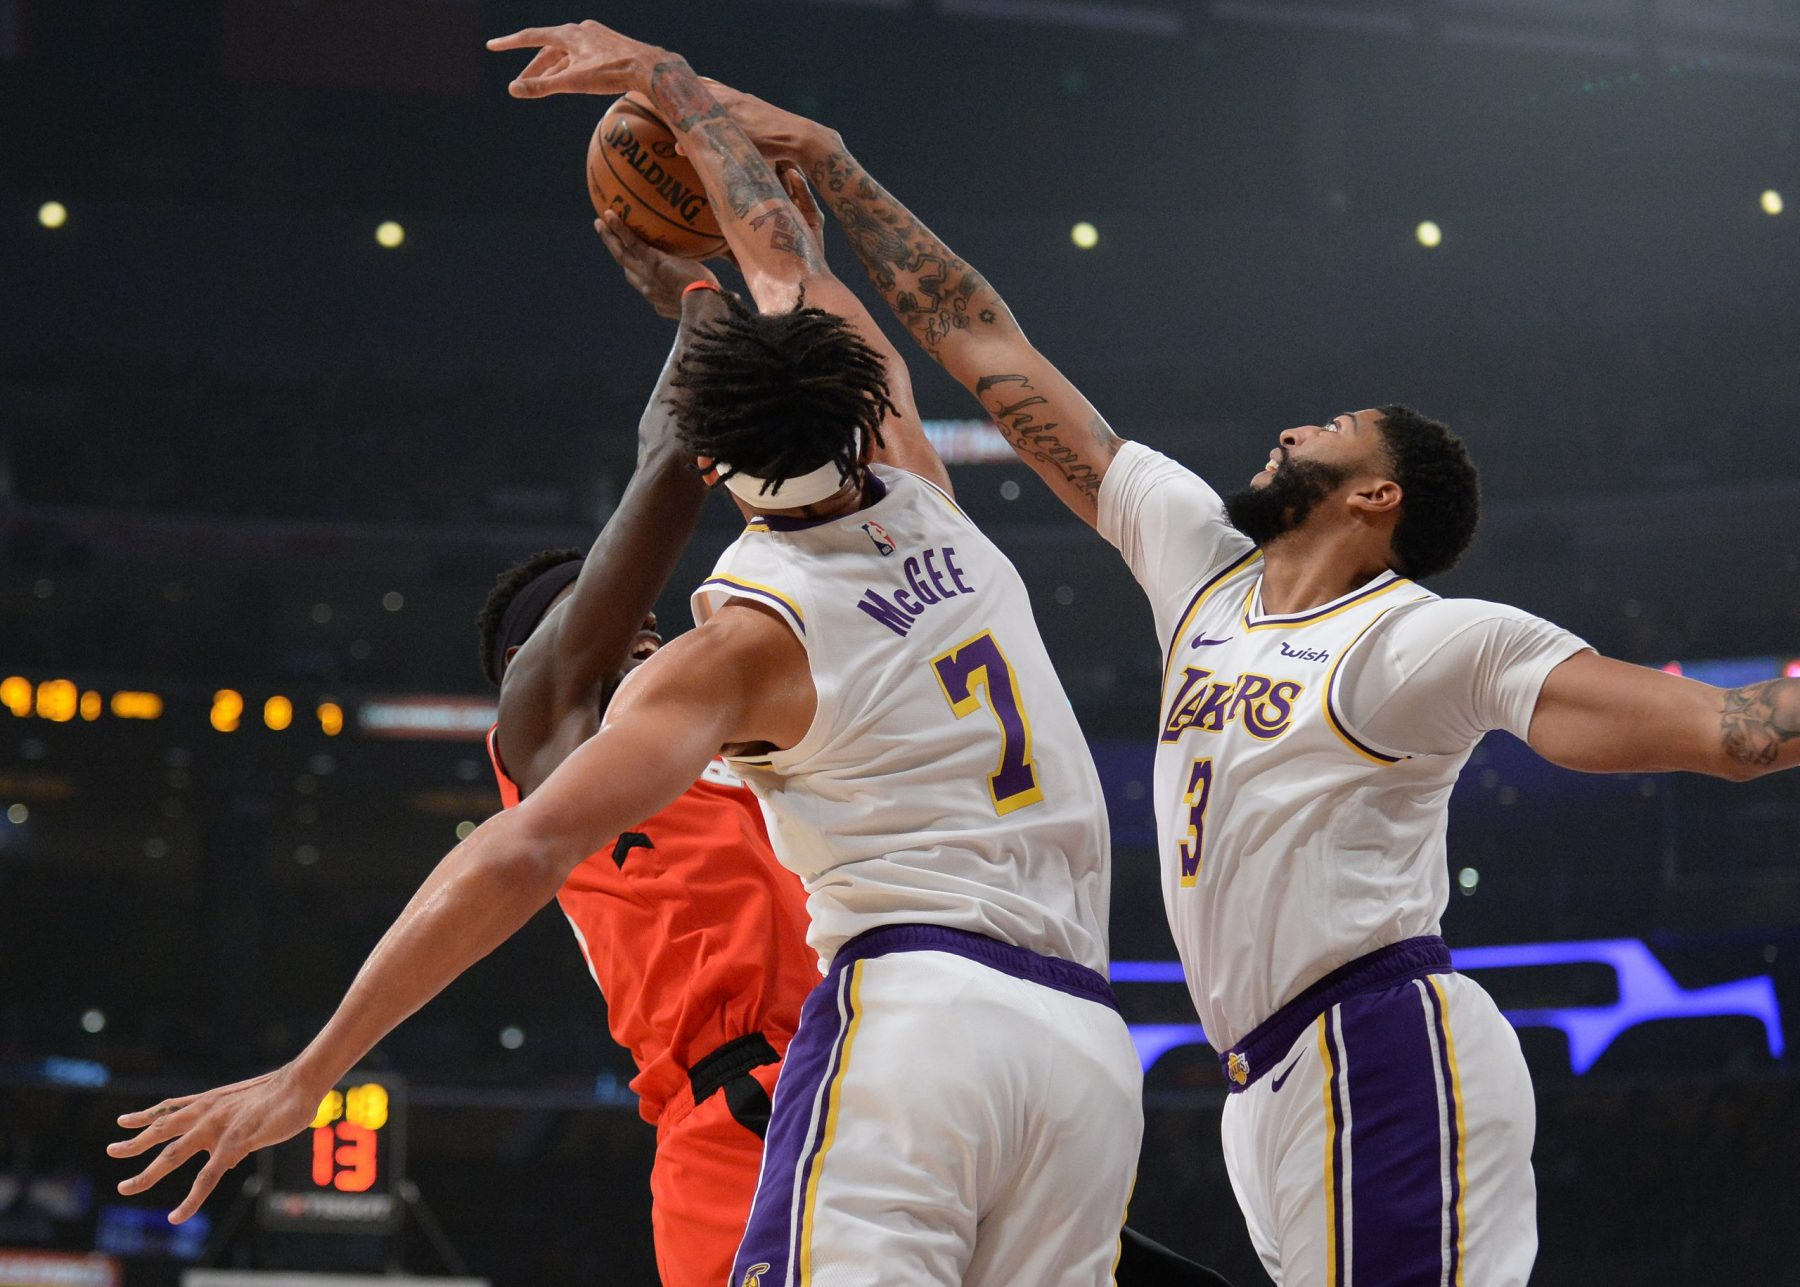 JaVale McGee and Anthony Davis